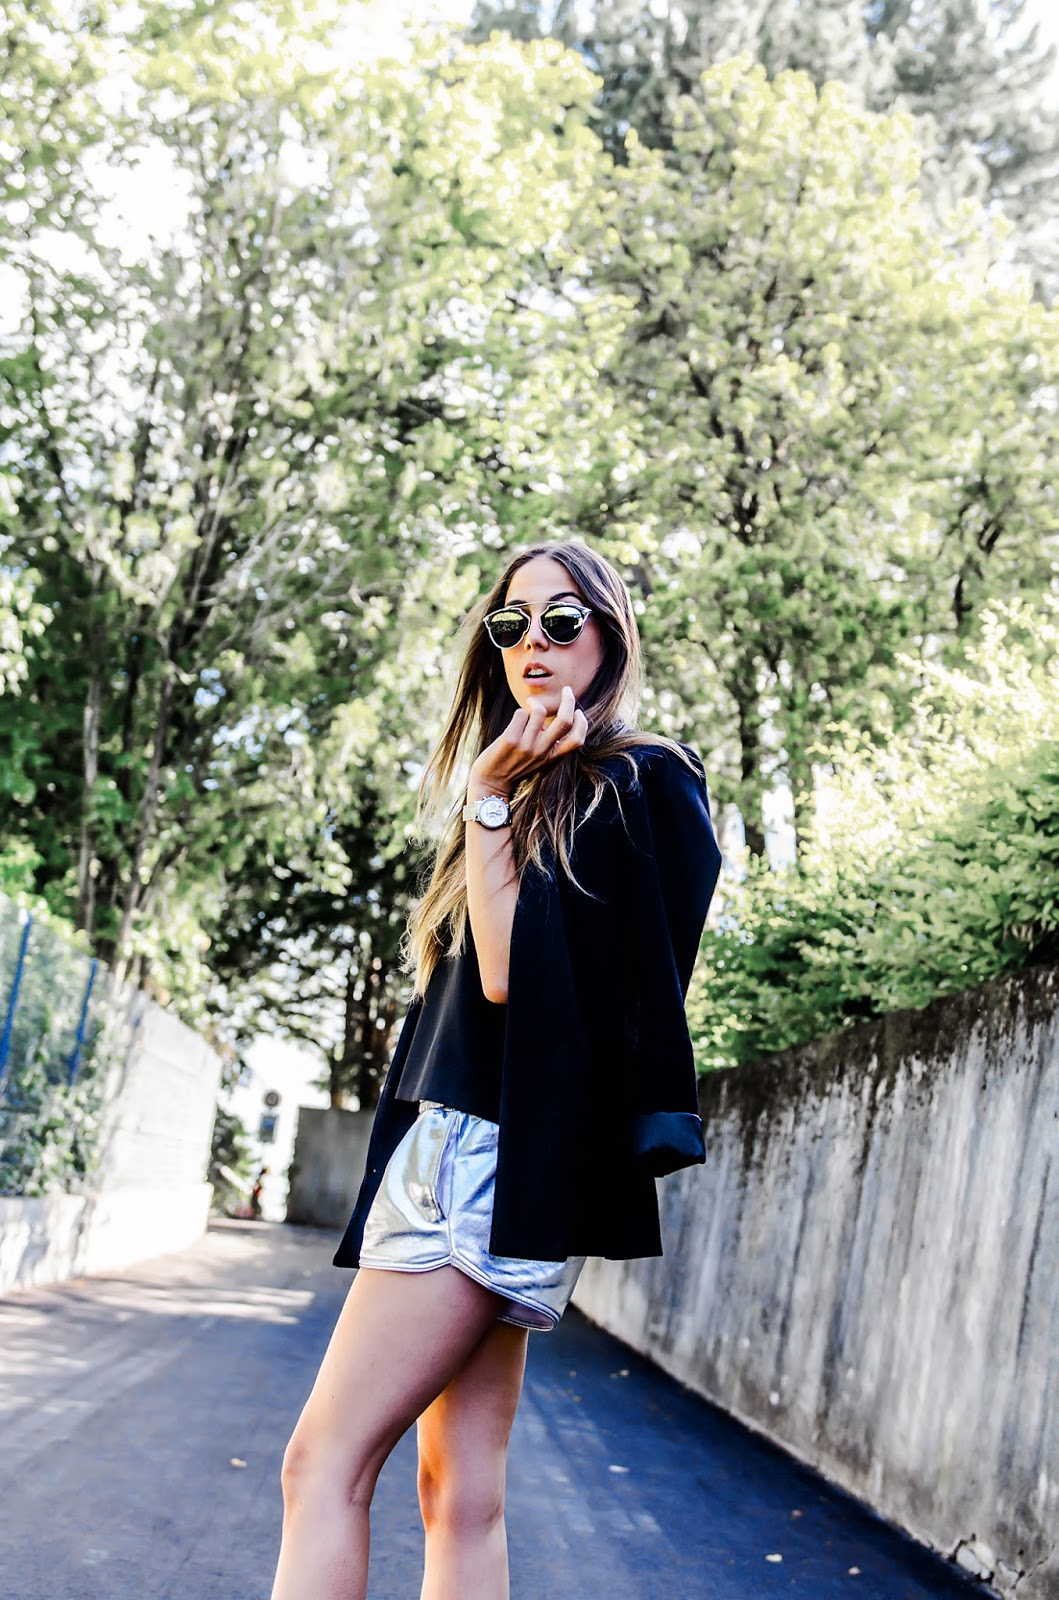 alison liaudat, #catfestivaldiaries, summer open air, festivals advice, Fashion blog from Switzerland, swiss blogger, fashion blog suisse, Swiss blogger, adidas london city, dior so real, mules, sport chic